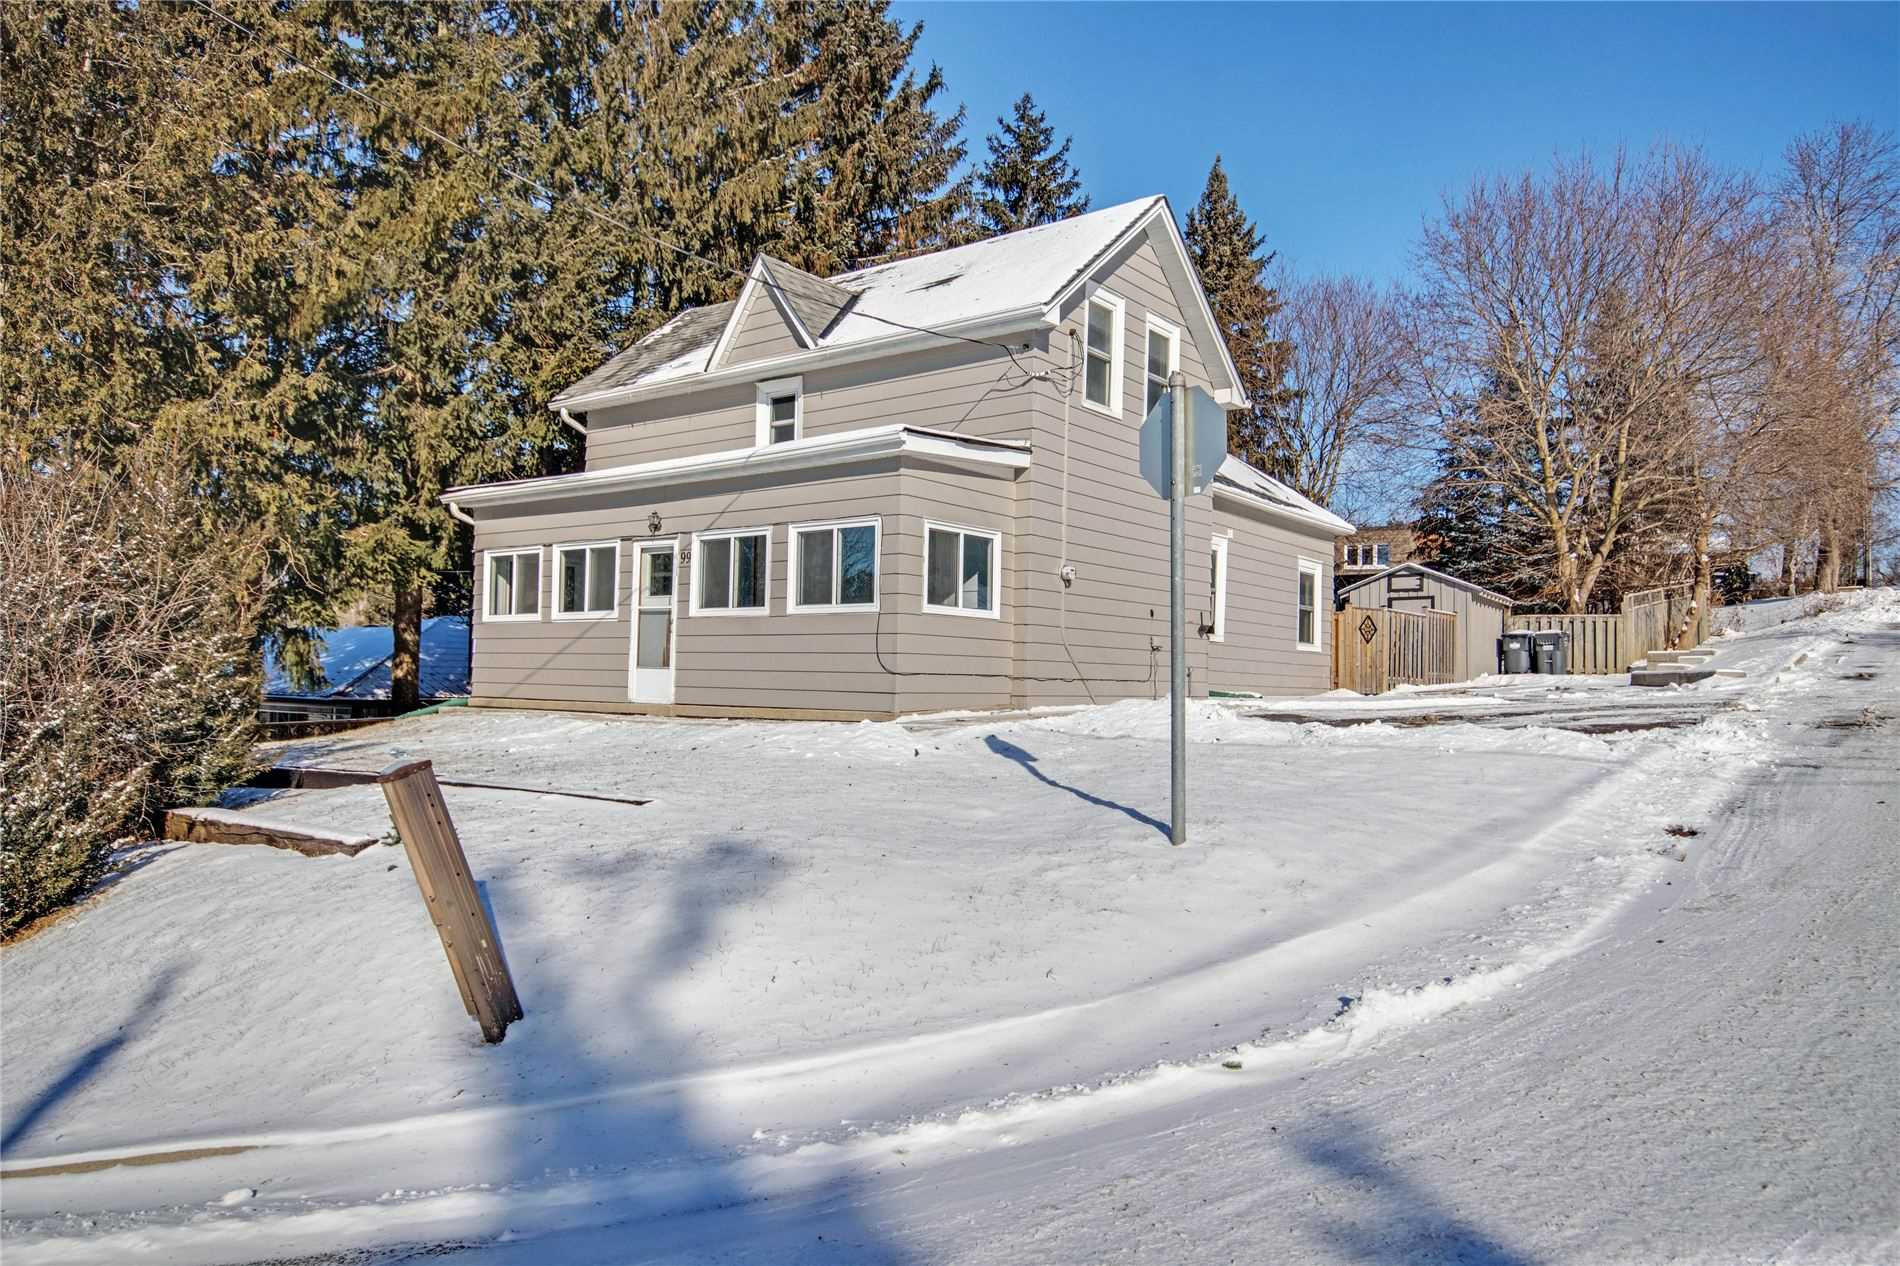 pictures of house for sale MLS: W4692092 located at 99 John St, Caledon L7E3H4